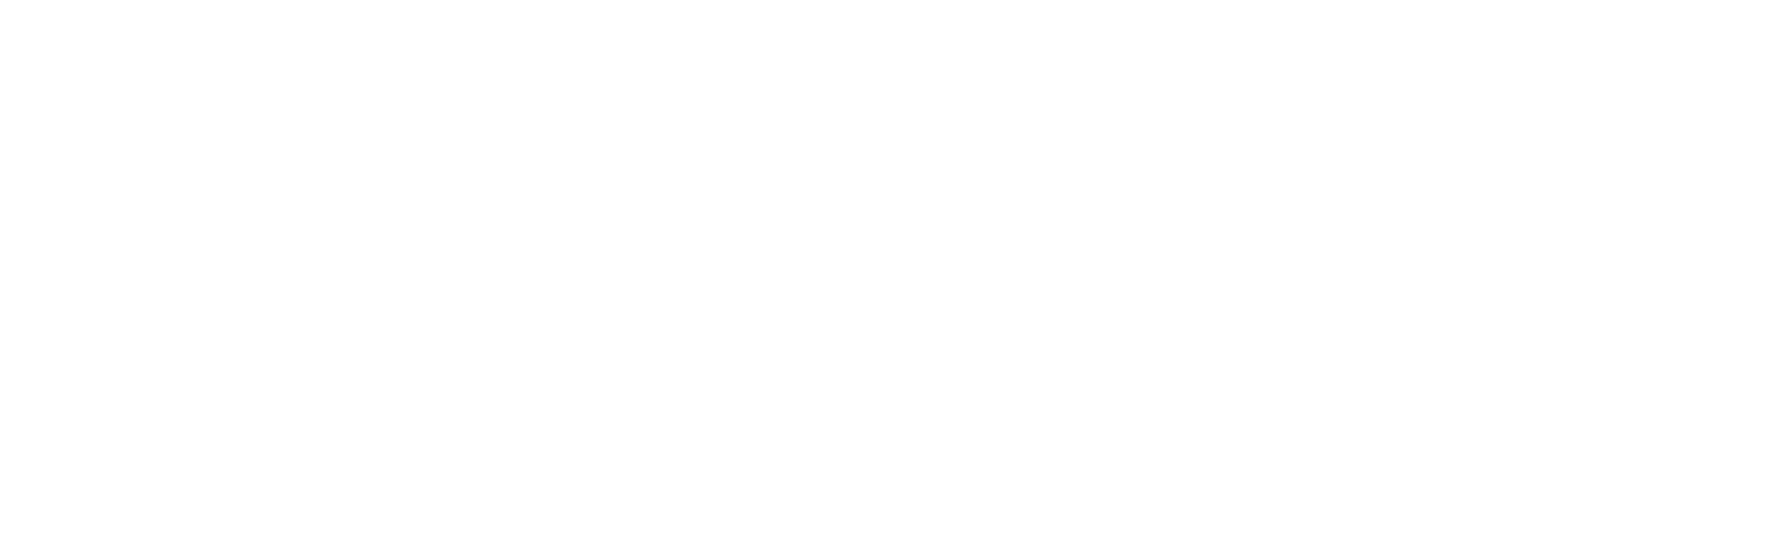 Logo Pegasus Unplugged